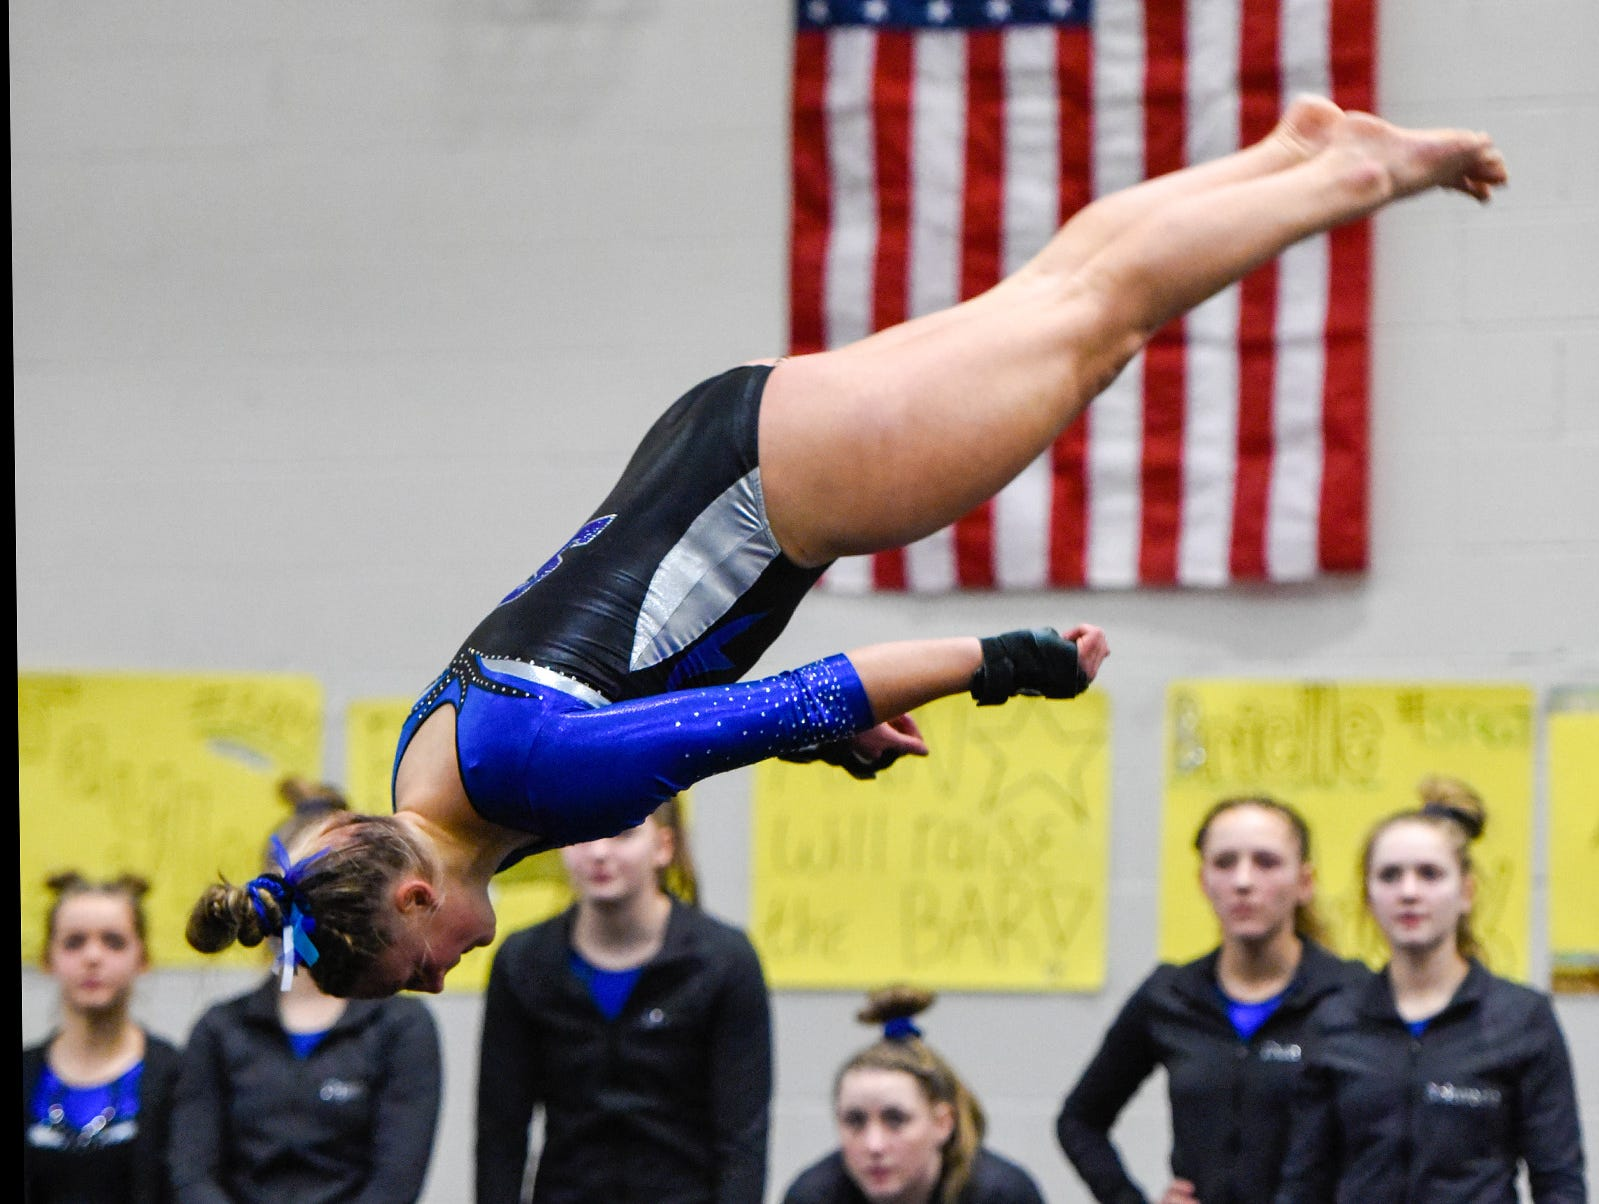 Sartell's Brenna Chisholm does a flip during her floor routine Thursday, Jan. 3, at the Sauk Rapids-Rice High School.